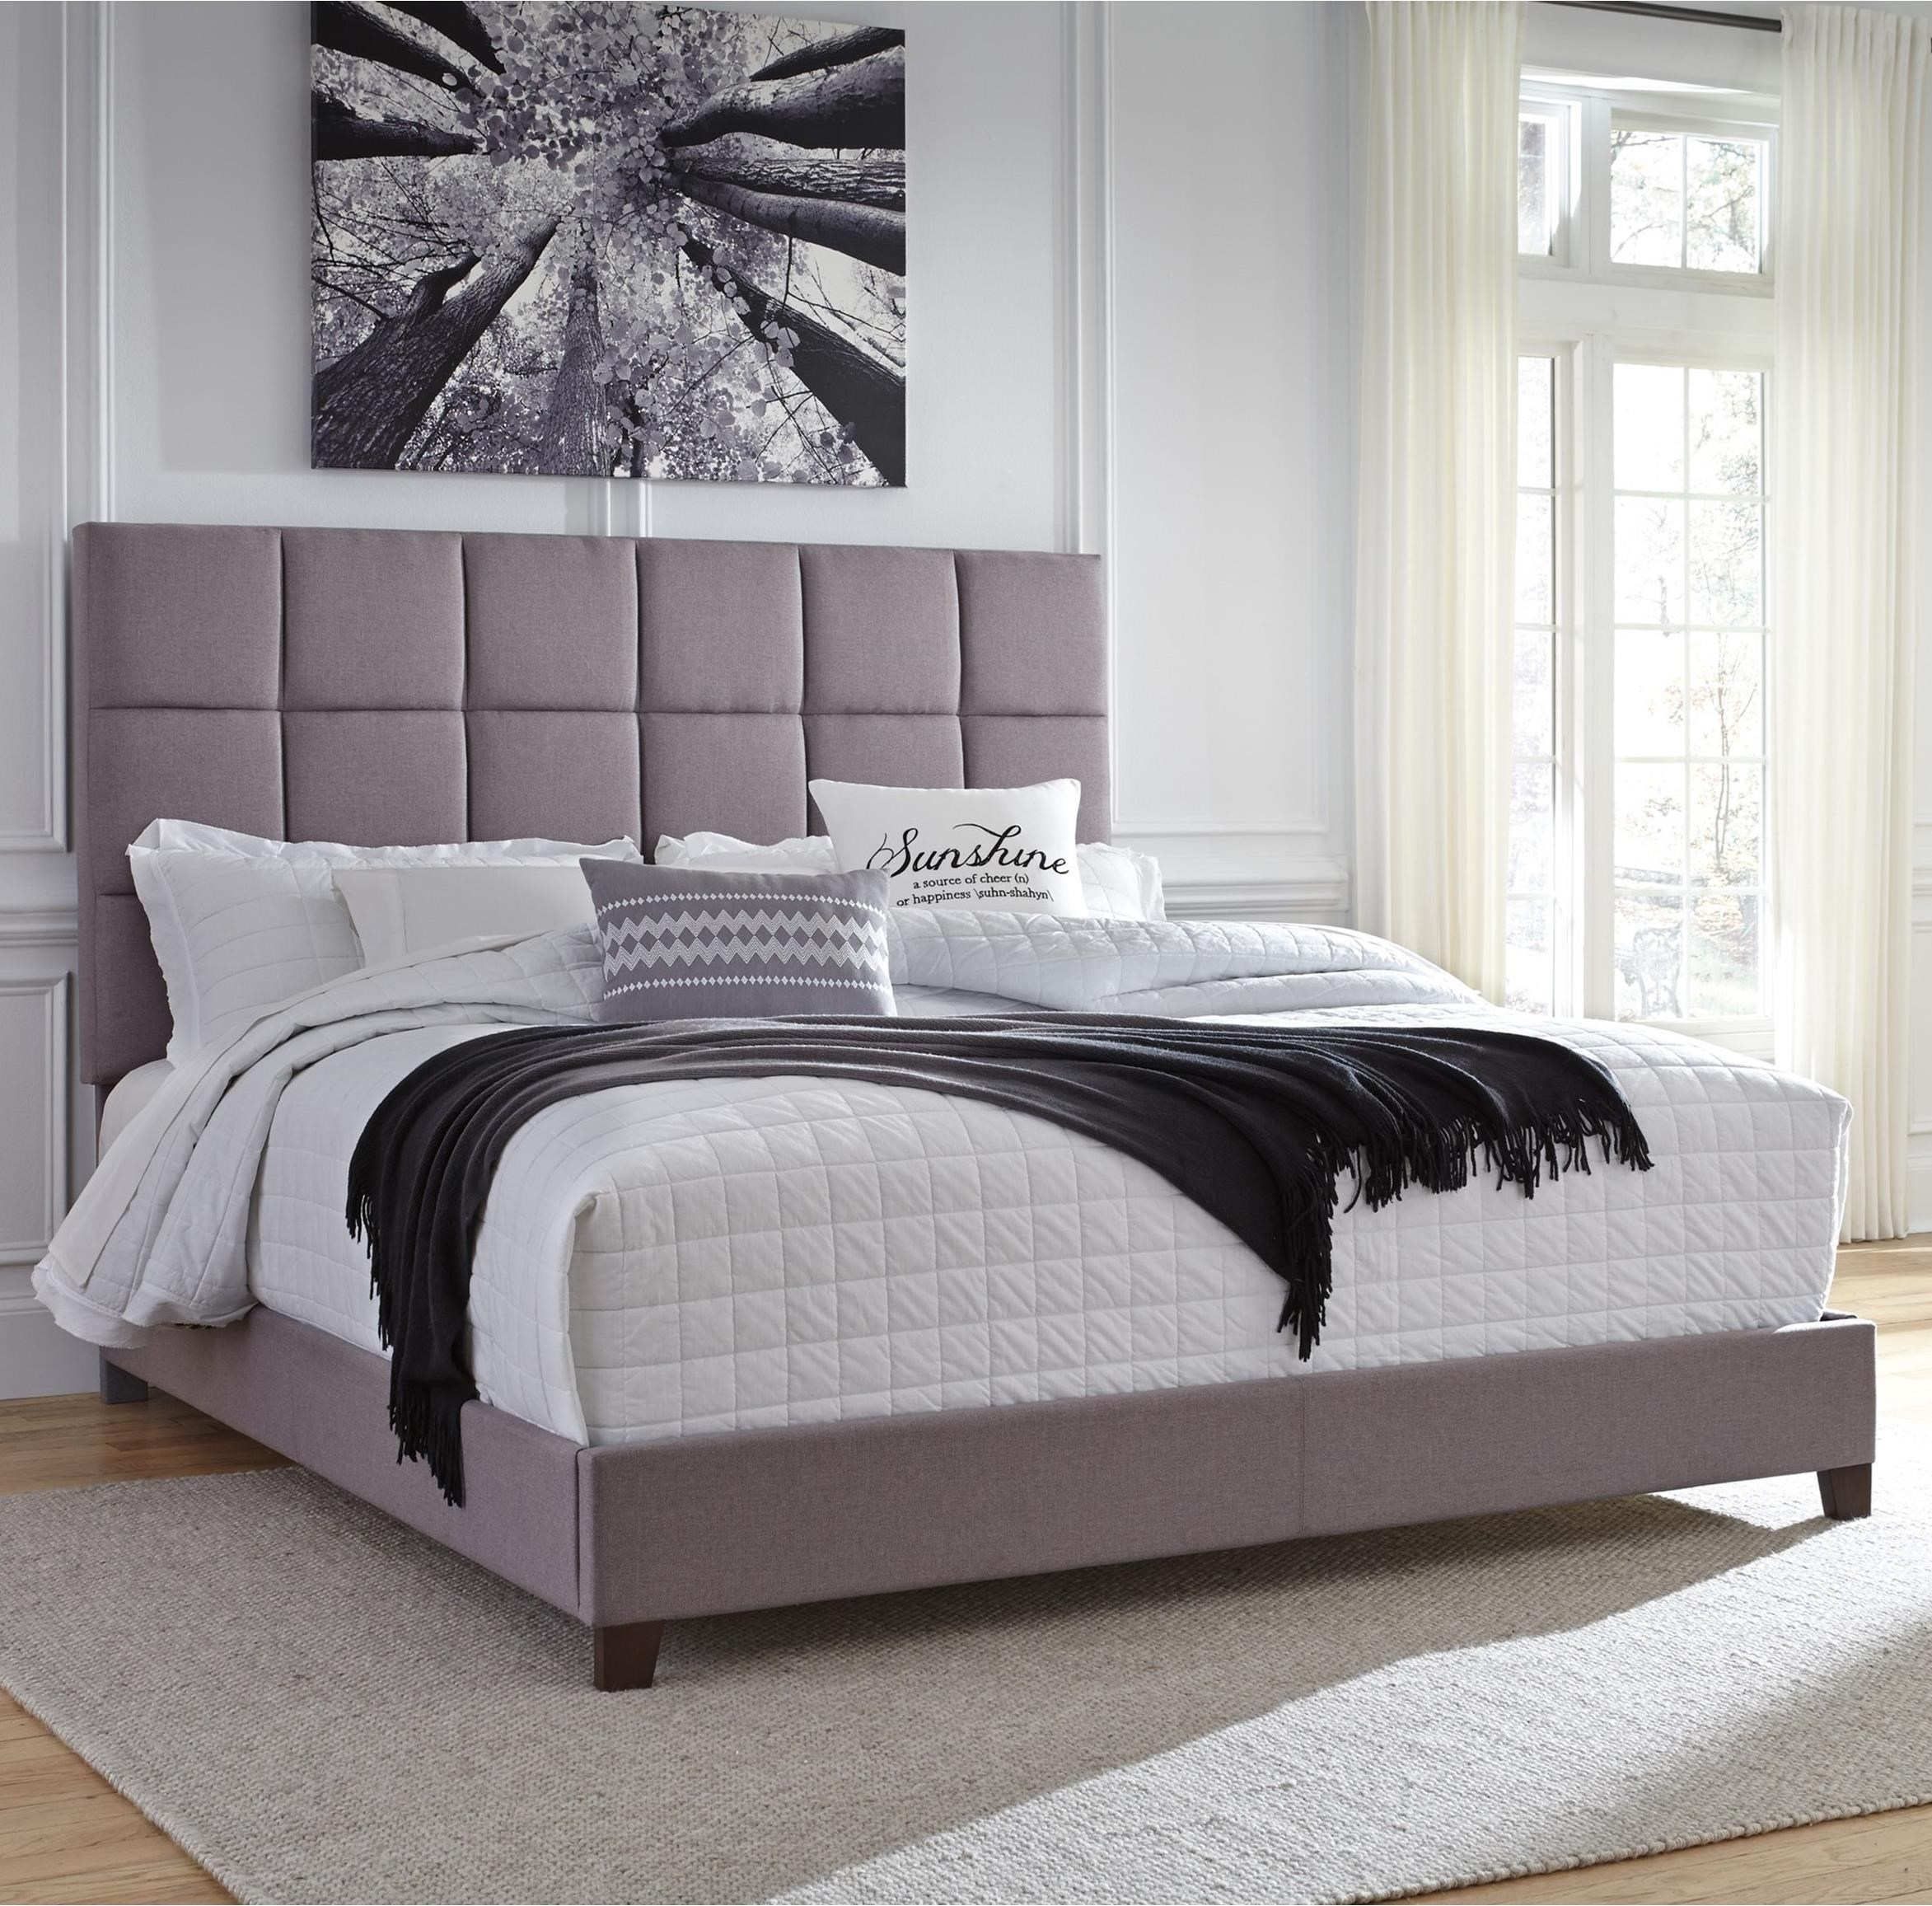 Signature Design By Ashley Dolante King Upholstered Bed In Gray Fabric Royal Furniture Upholstered Beds